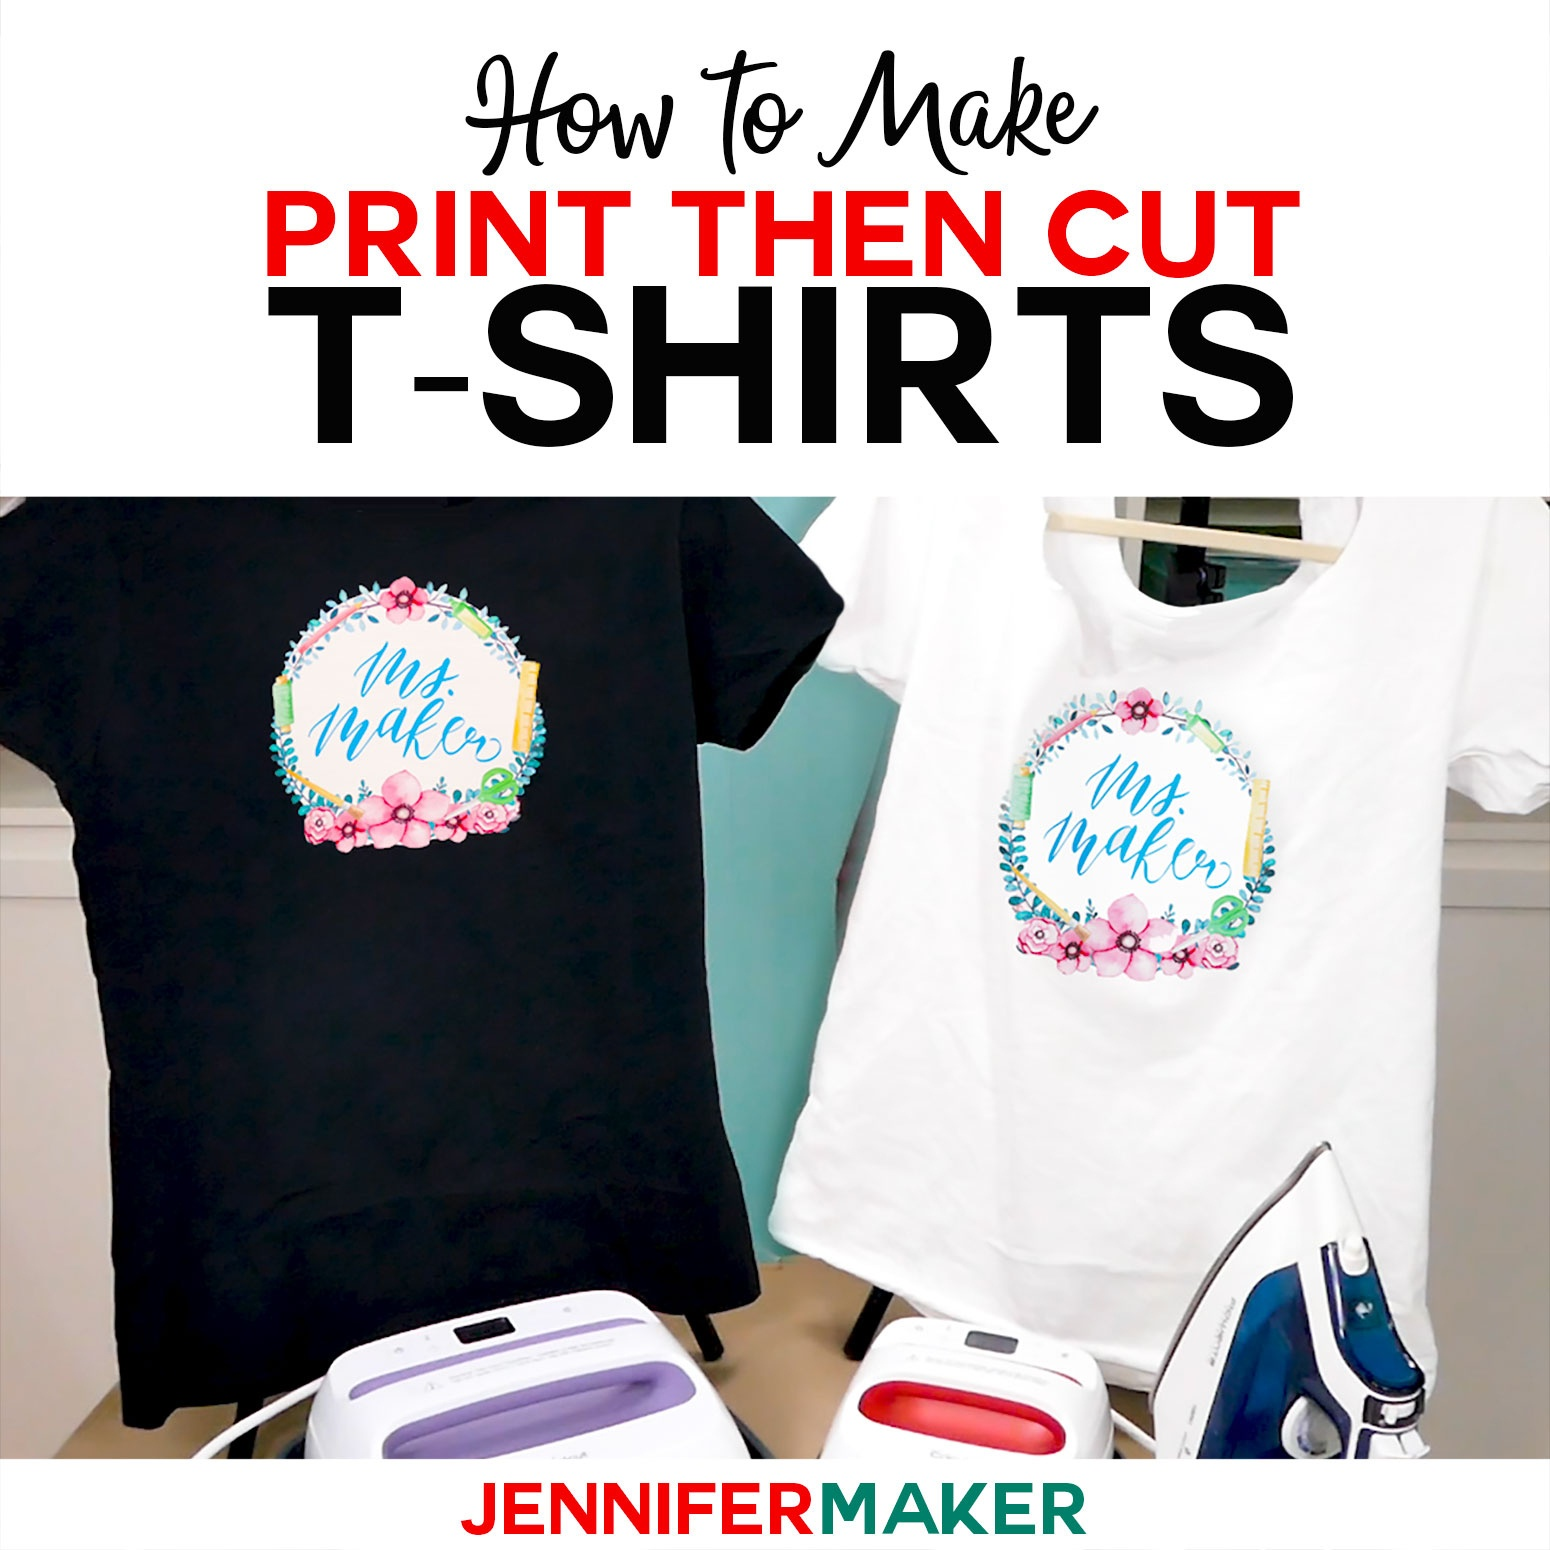 Print Then Cut Cricut Transfer T-Shirts - Jennifer Maker - Free Printable Iron On Transfers For T Shirts